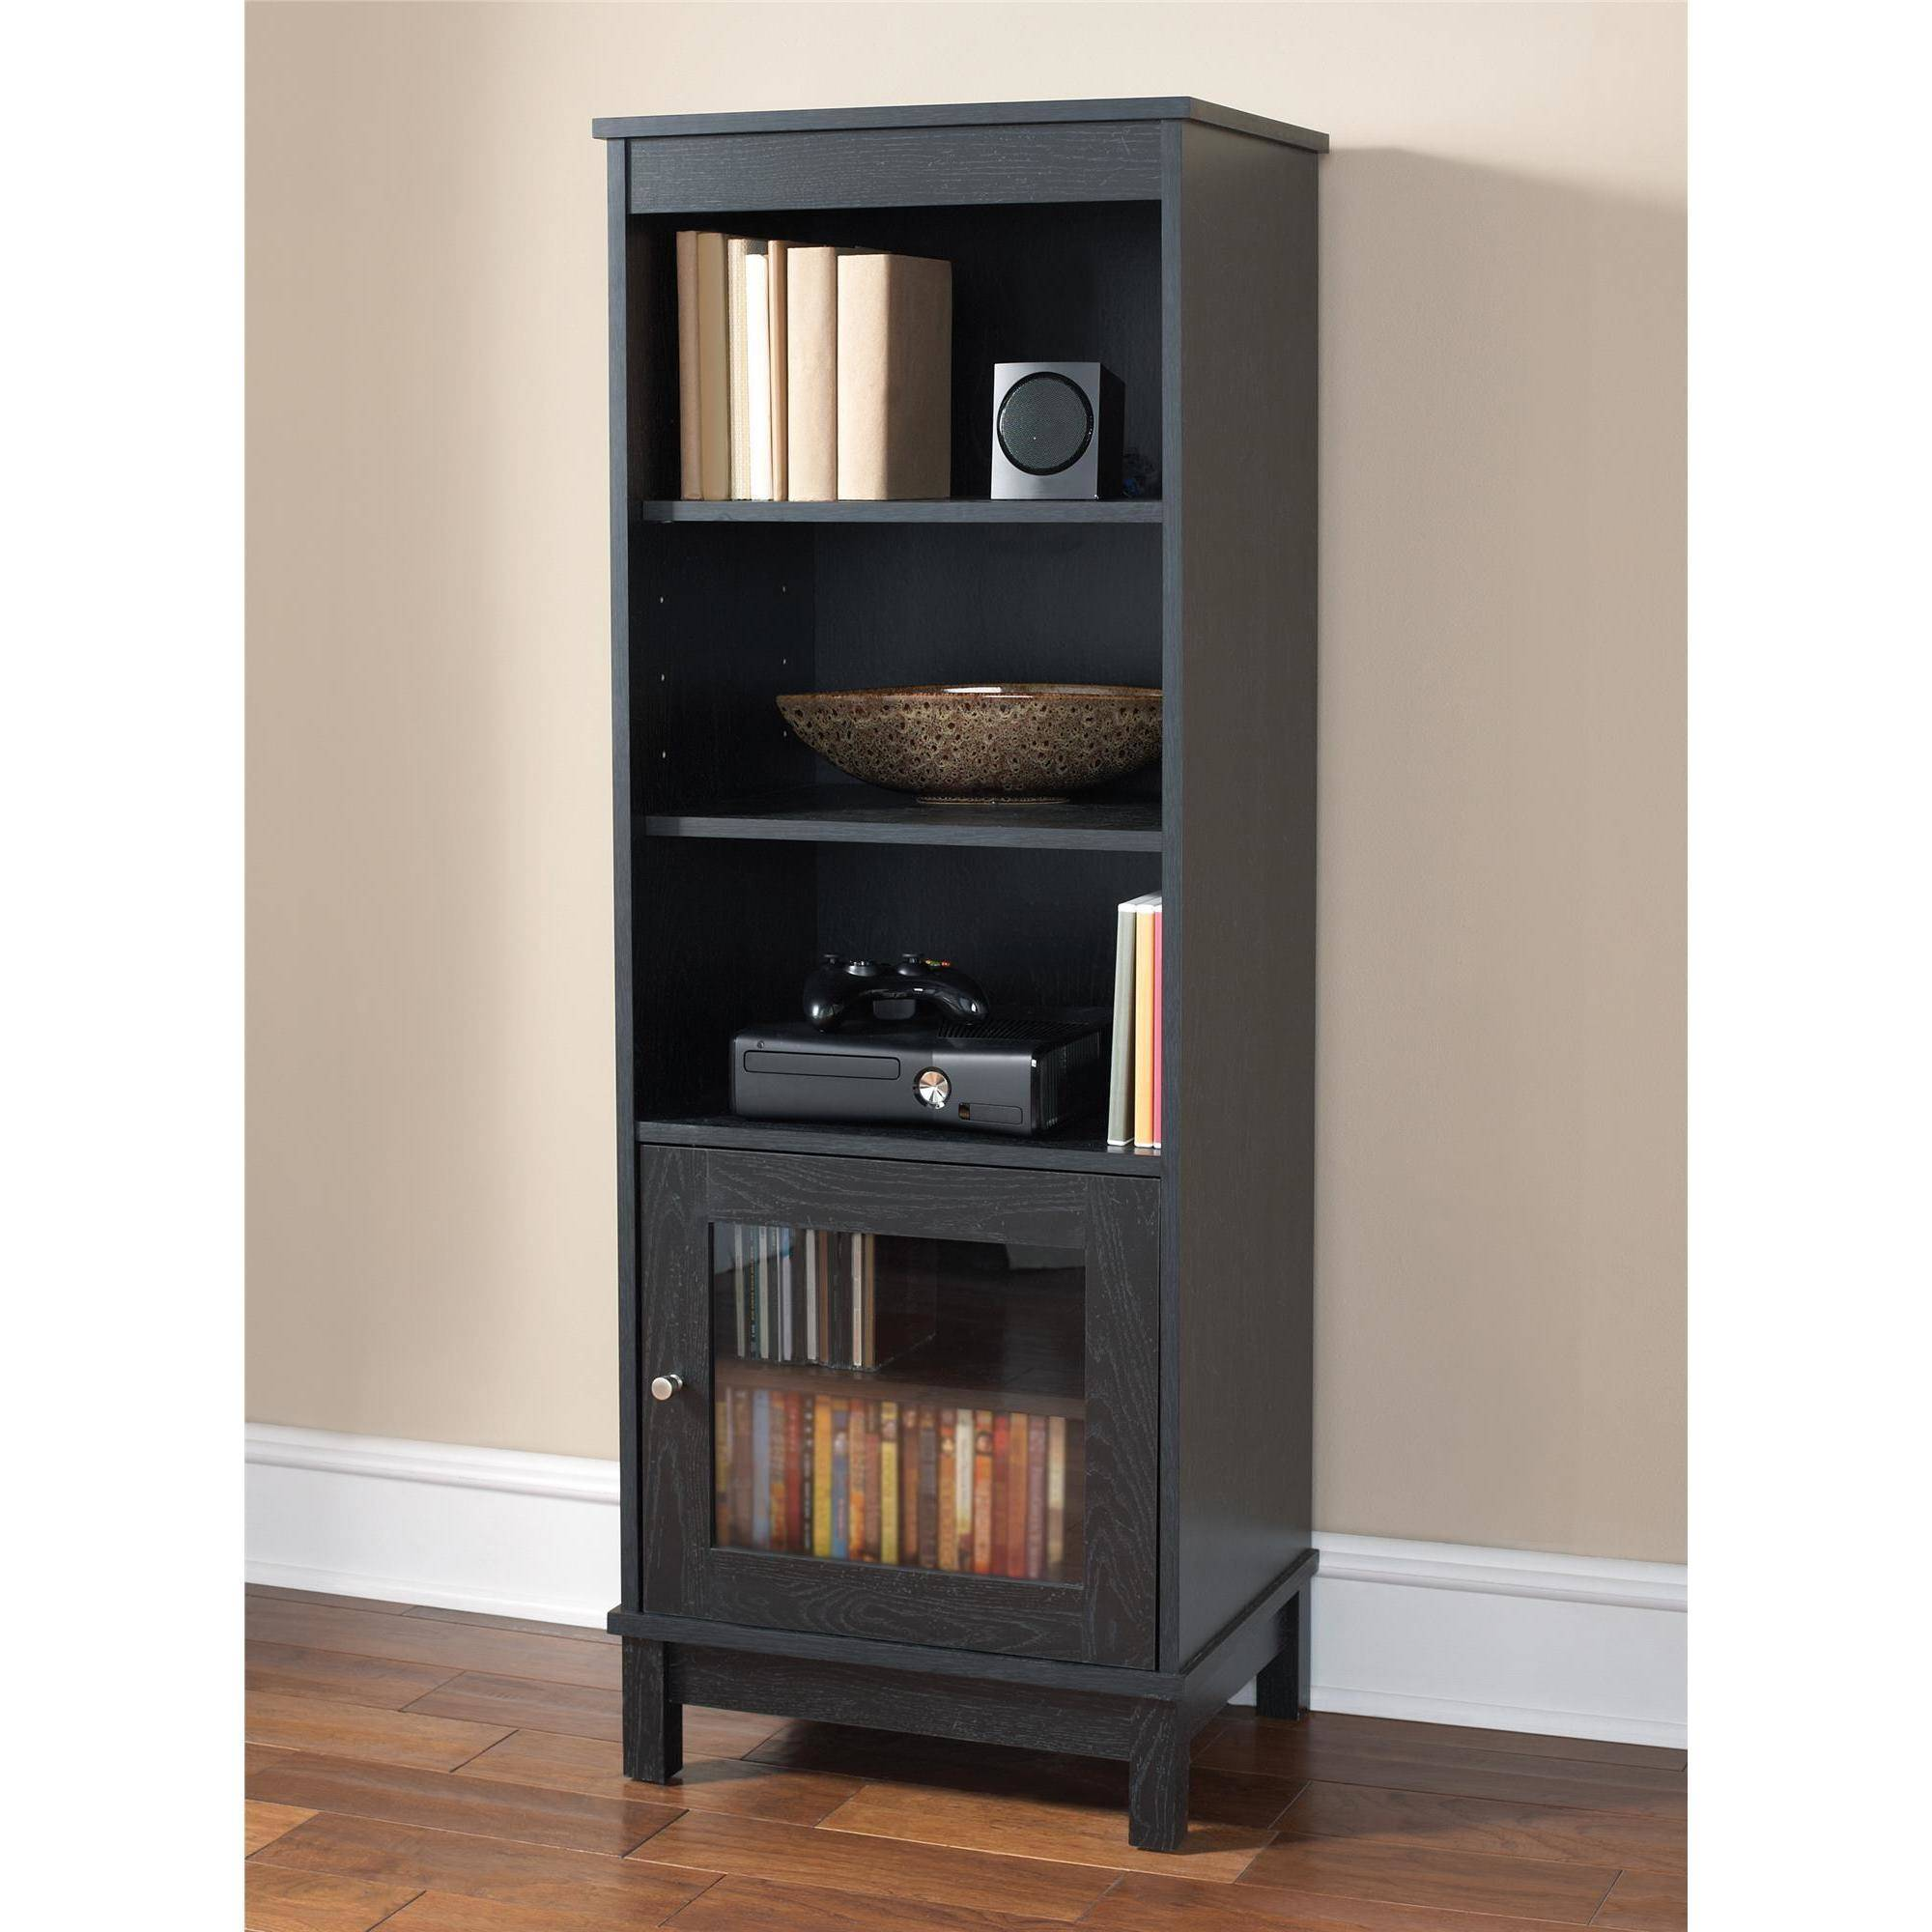 units dvd player black ater storage cabine home gallery cabinet ray in formidable shelf doors tower snazzy door update family her cd blu gh large with closet on perfect hidden ideas